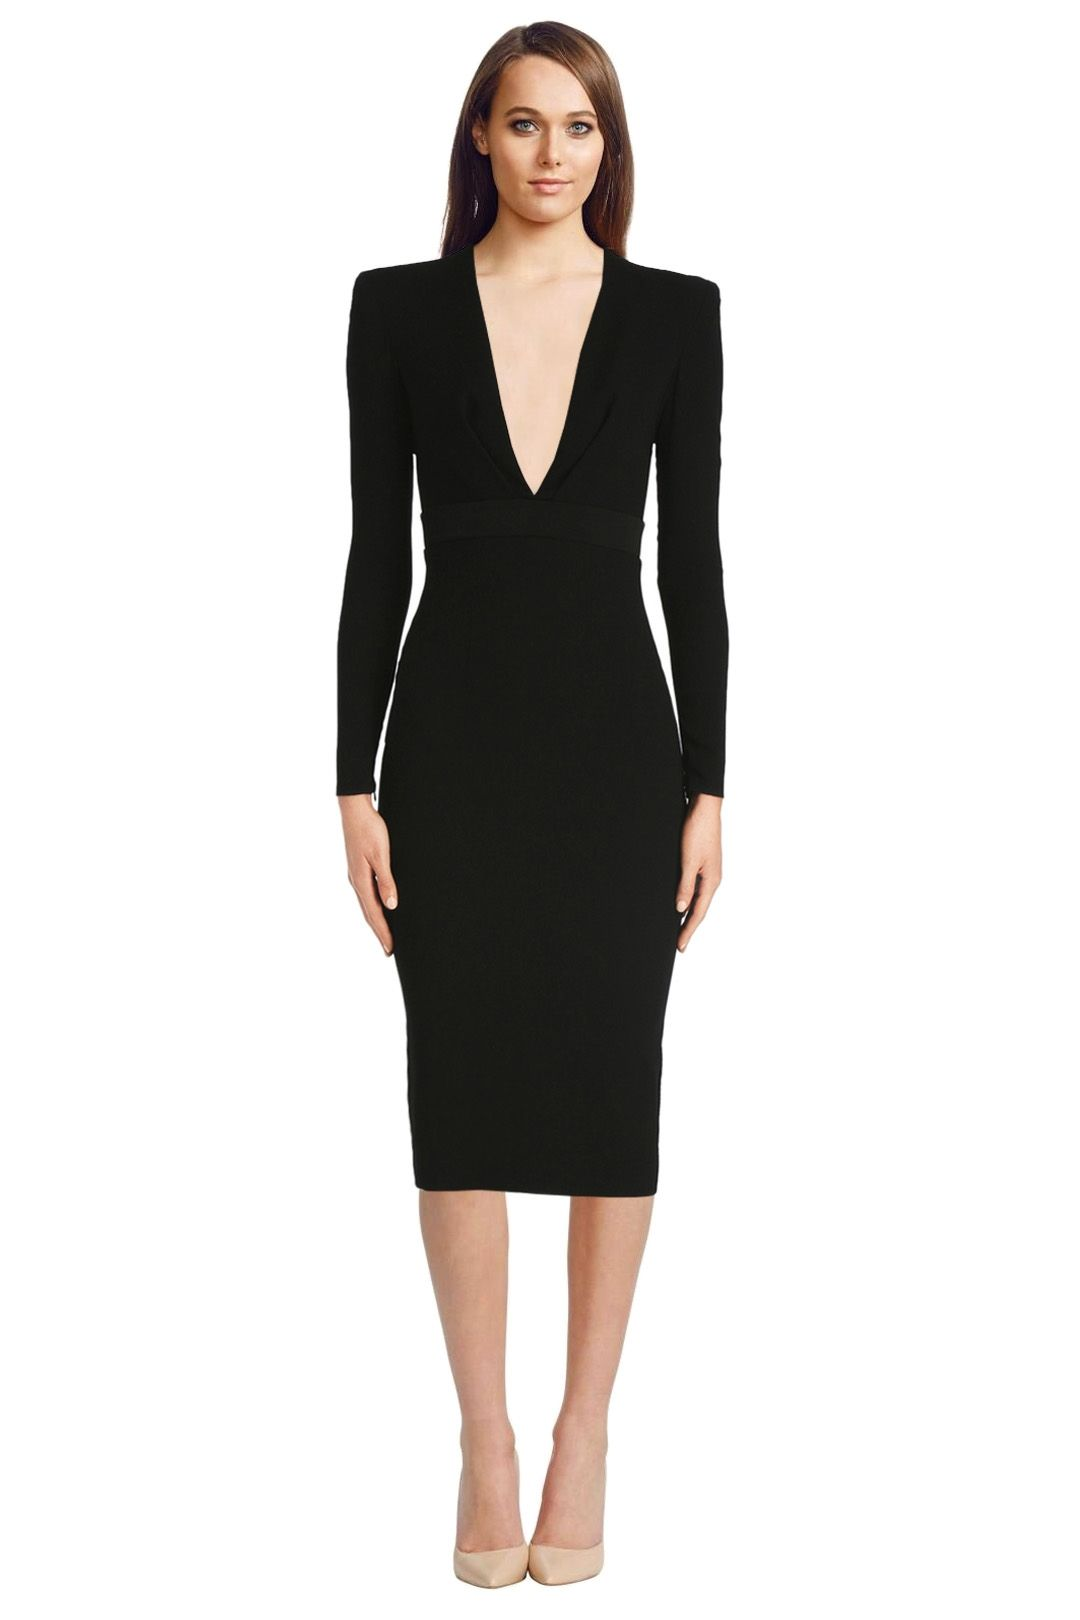 Alex Perry - Nadine Satin Crepe V Pencil Dress - Black - Front